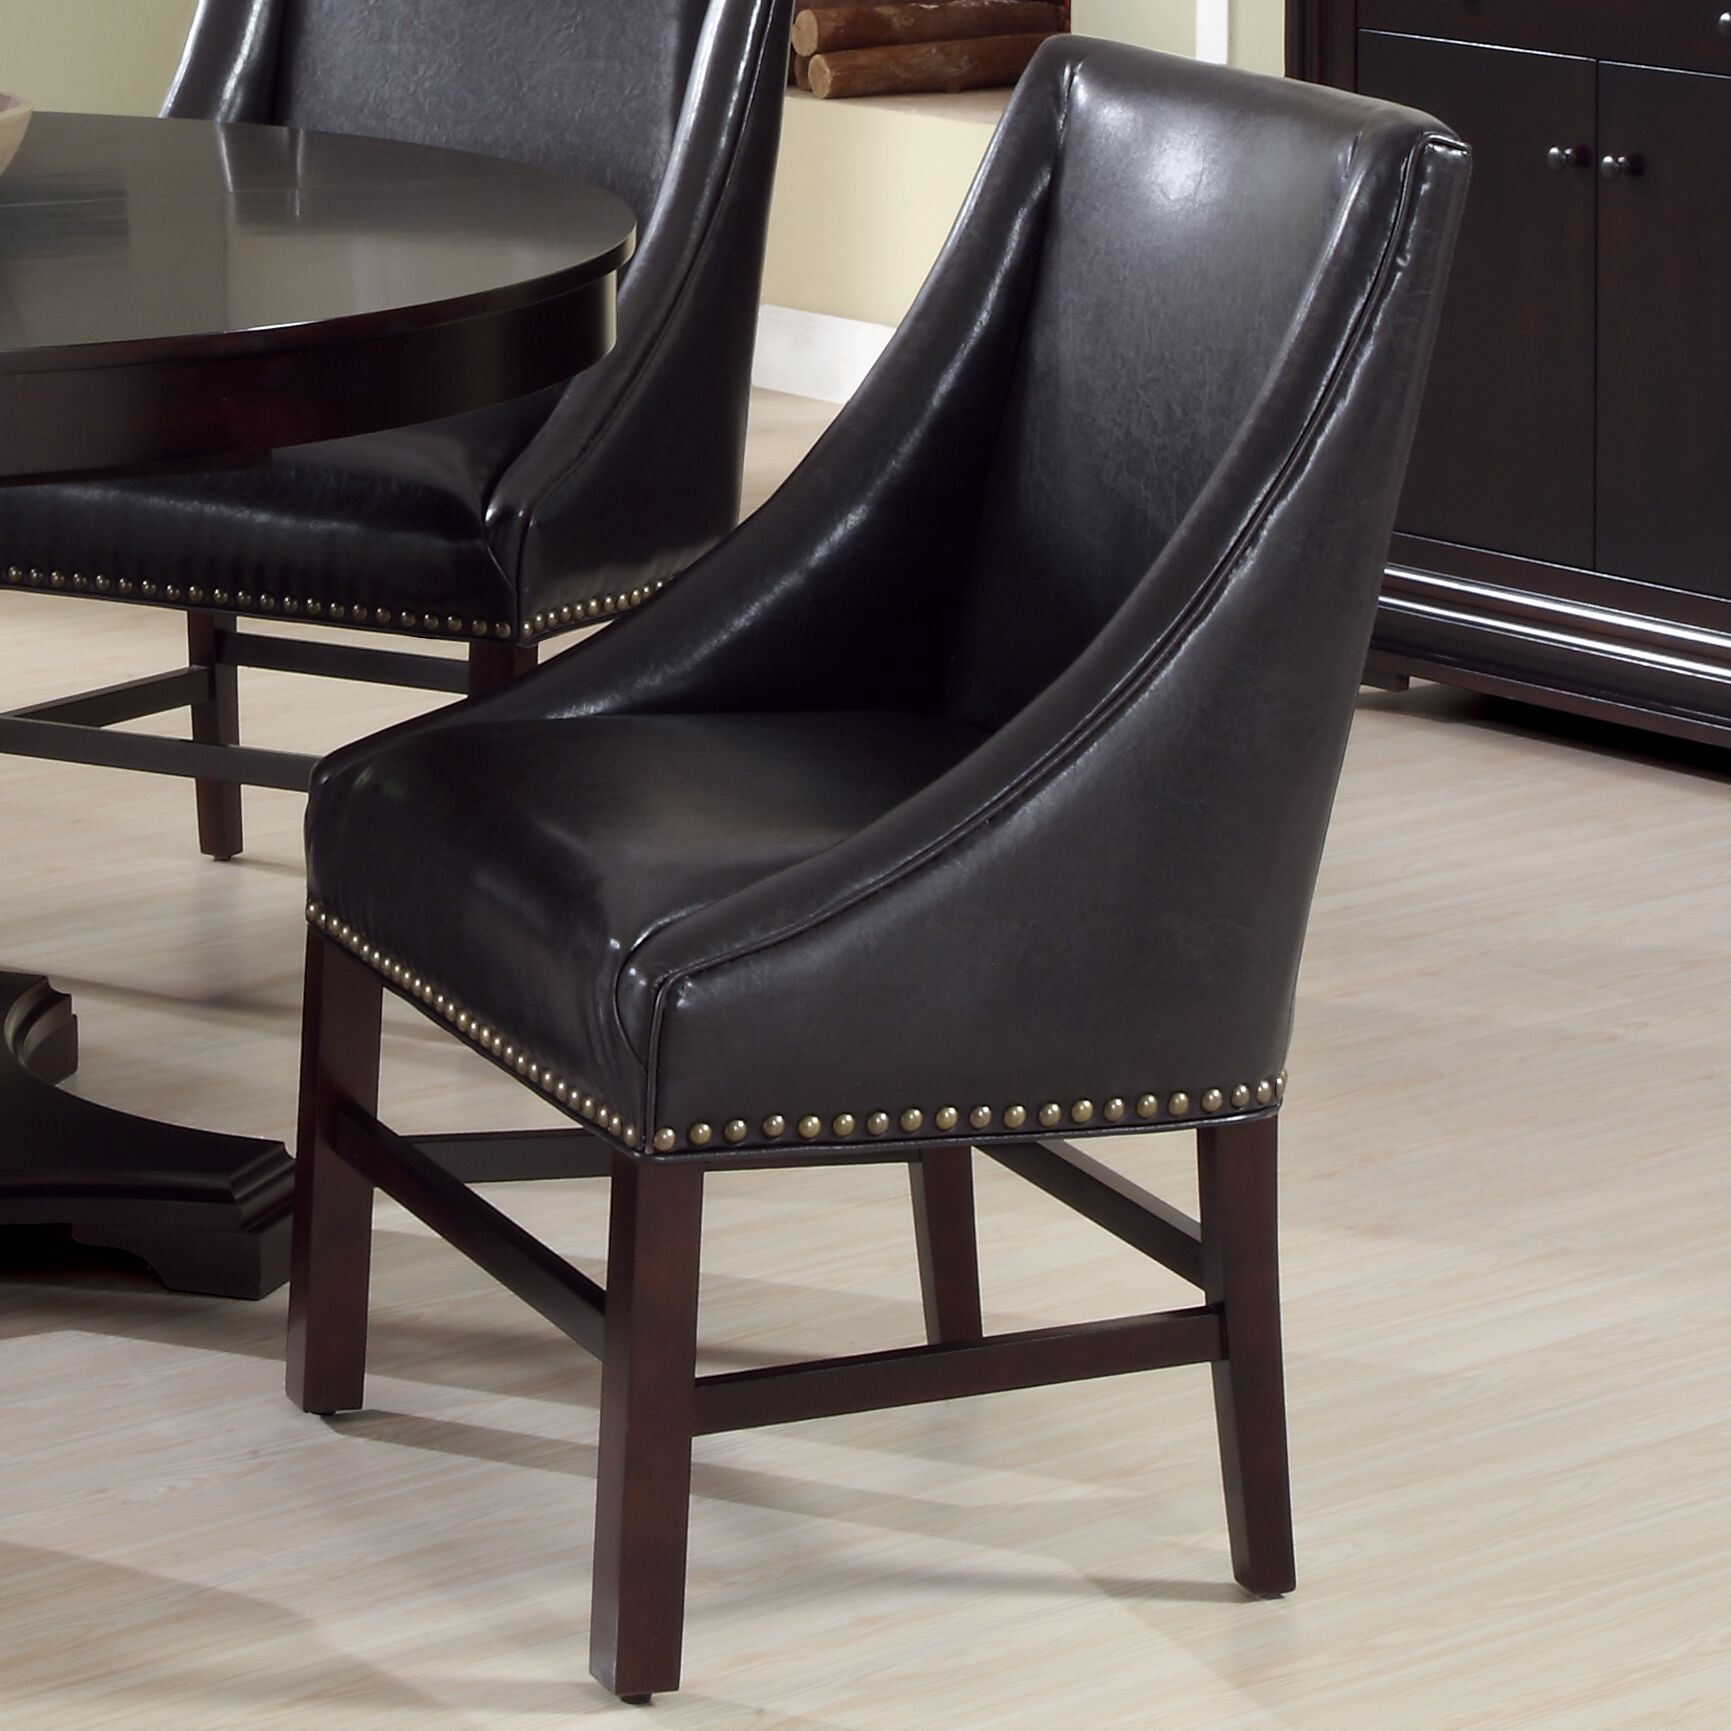 Arm Chair Upholstery Color: Bond Leather - Dark Brown